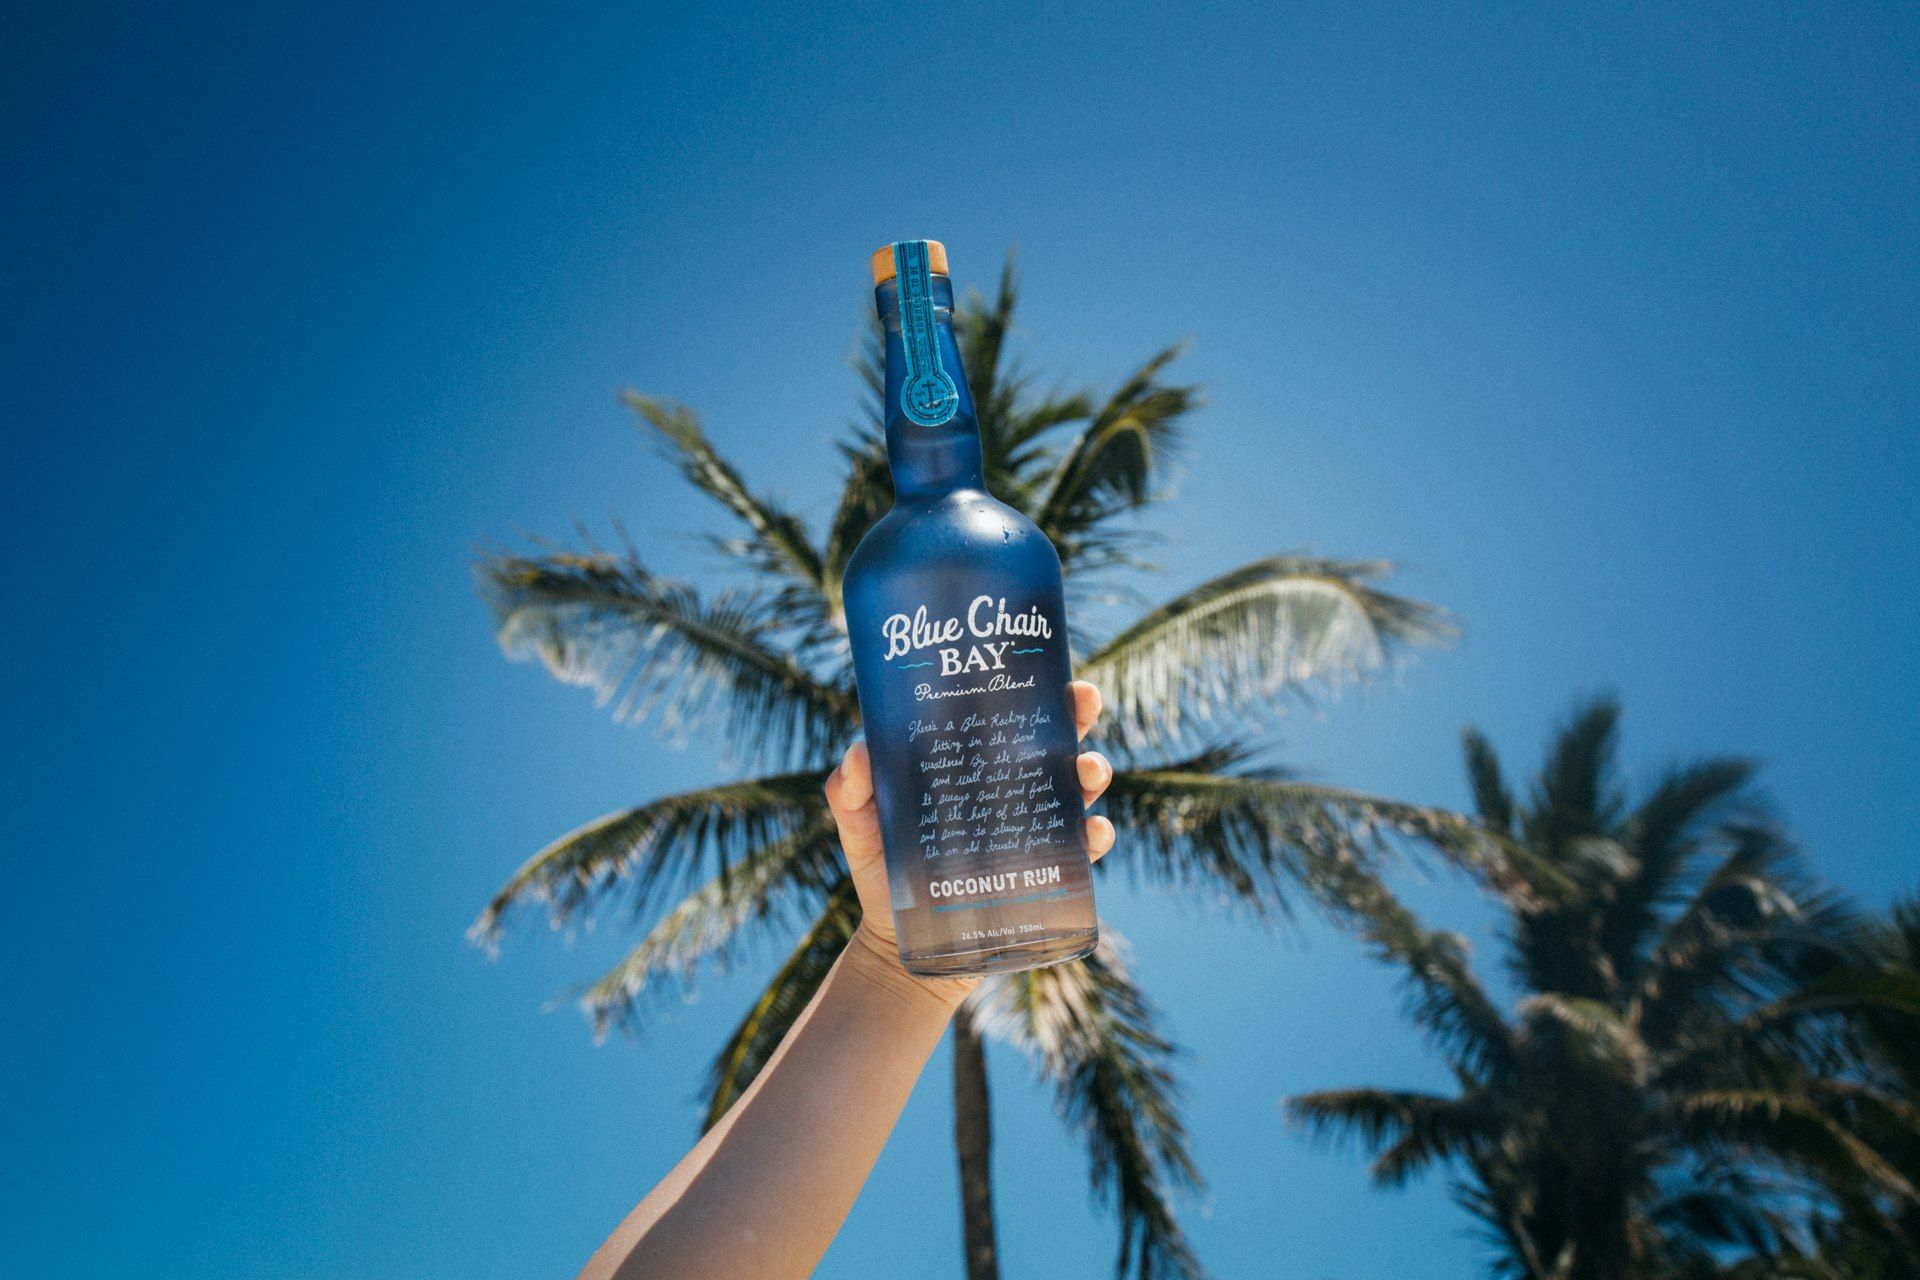 Coconut rum made with natural ingredients because it